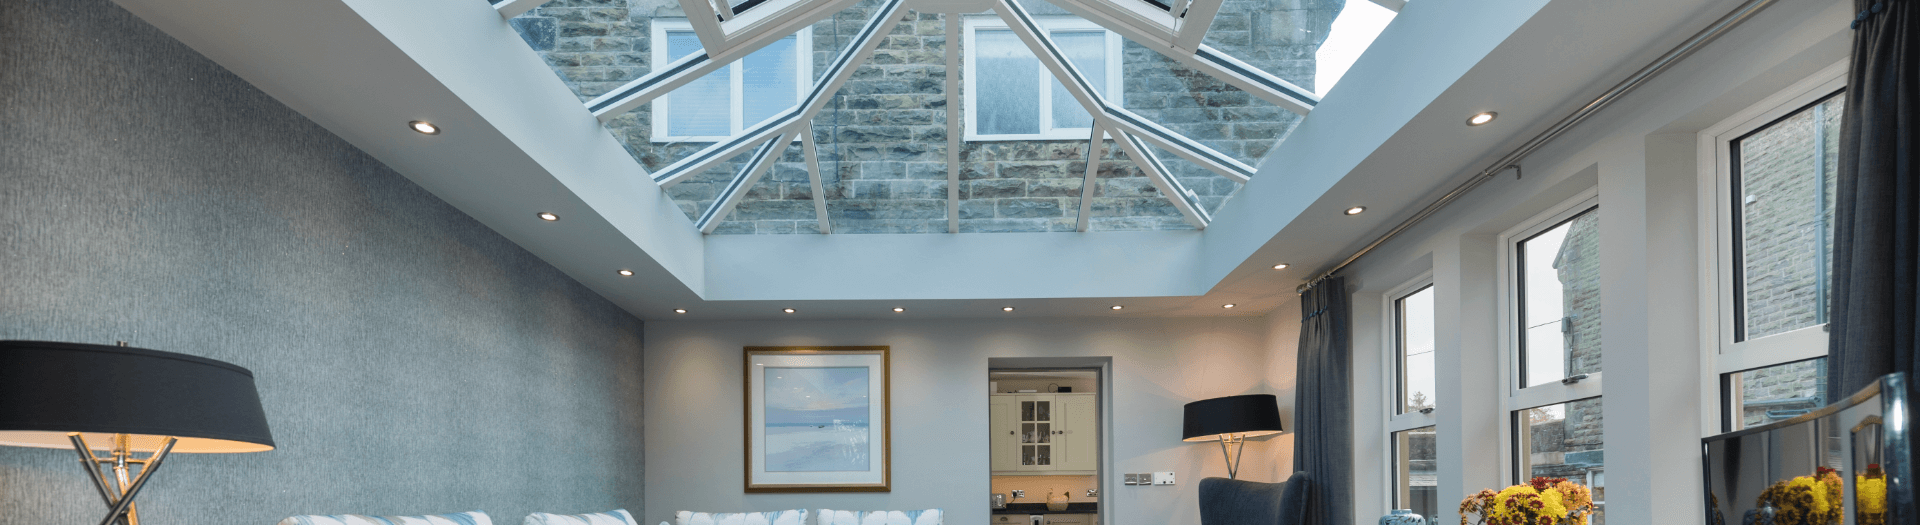 Interior of modern conservatory with sky lights